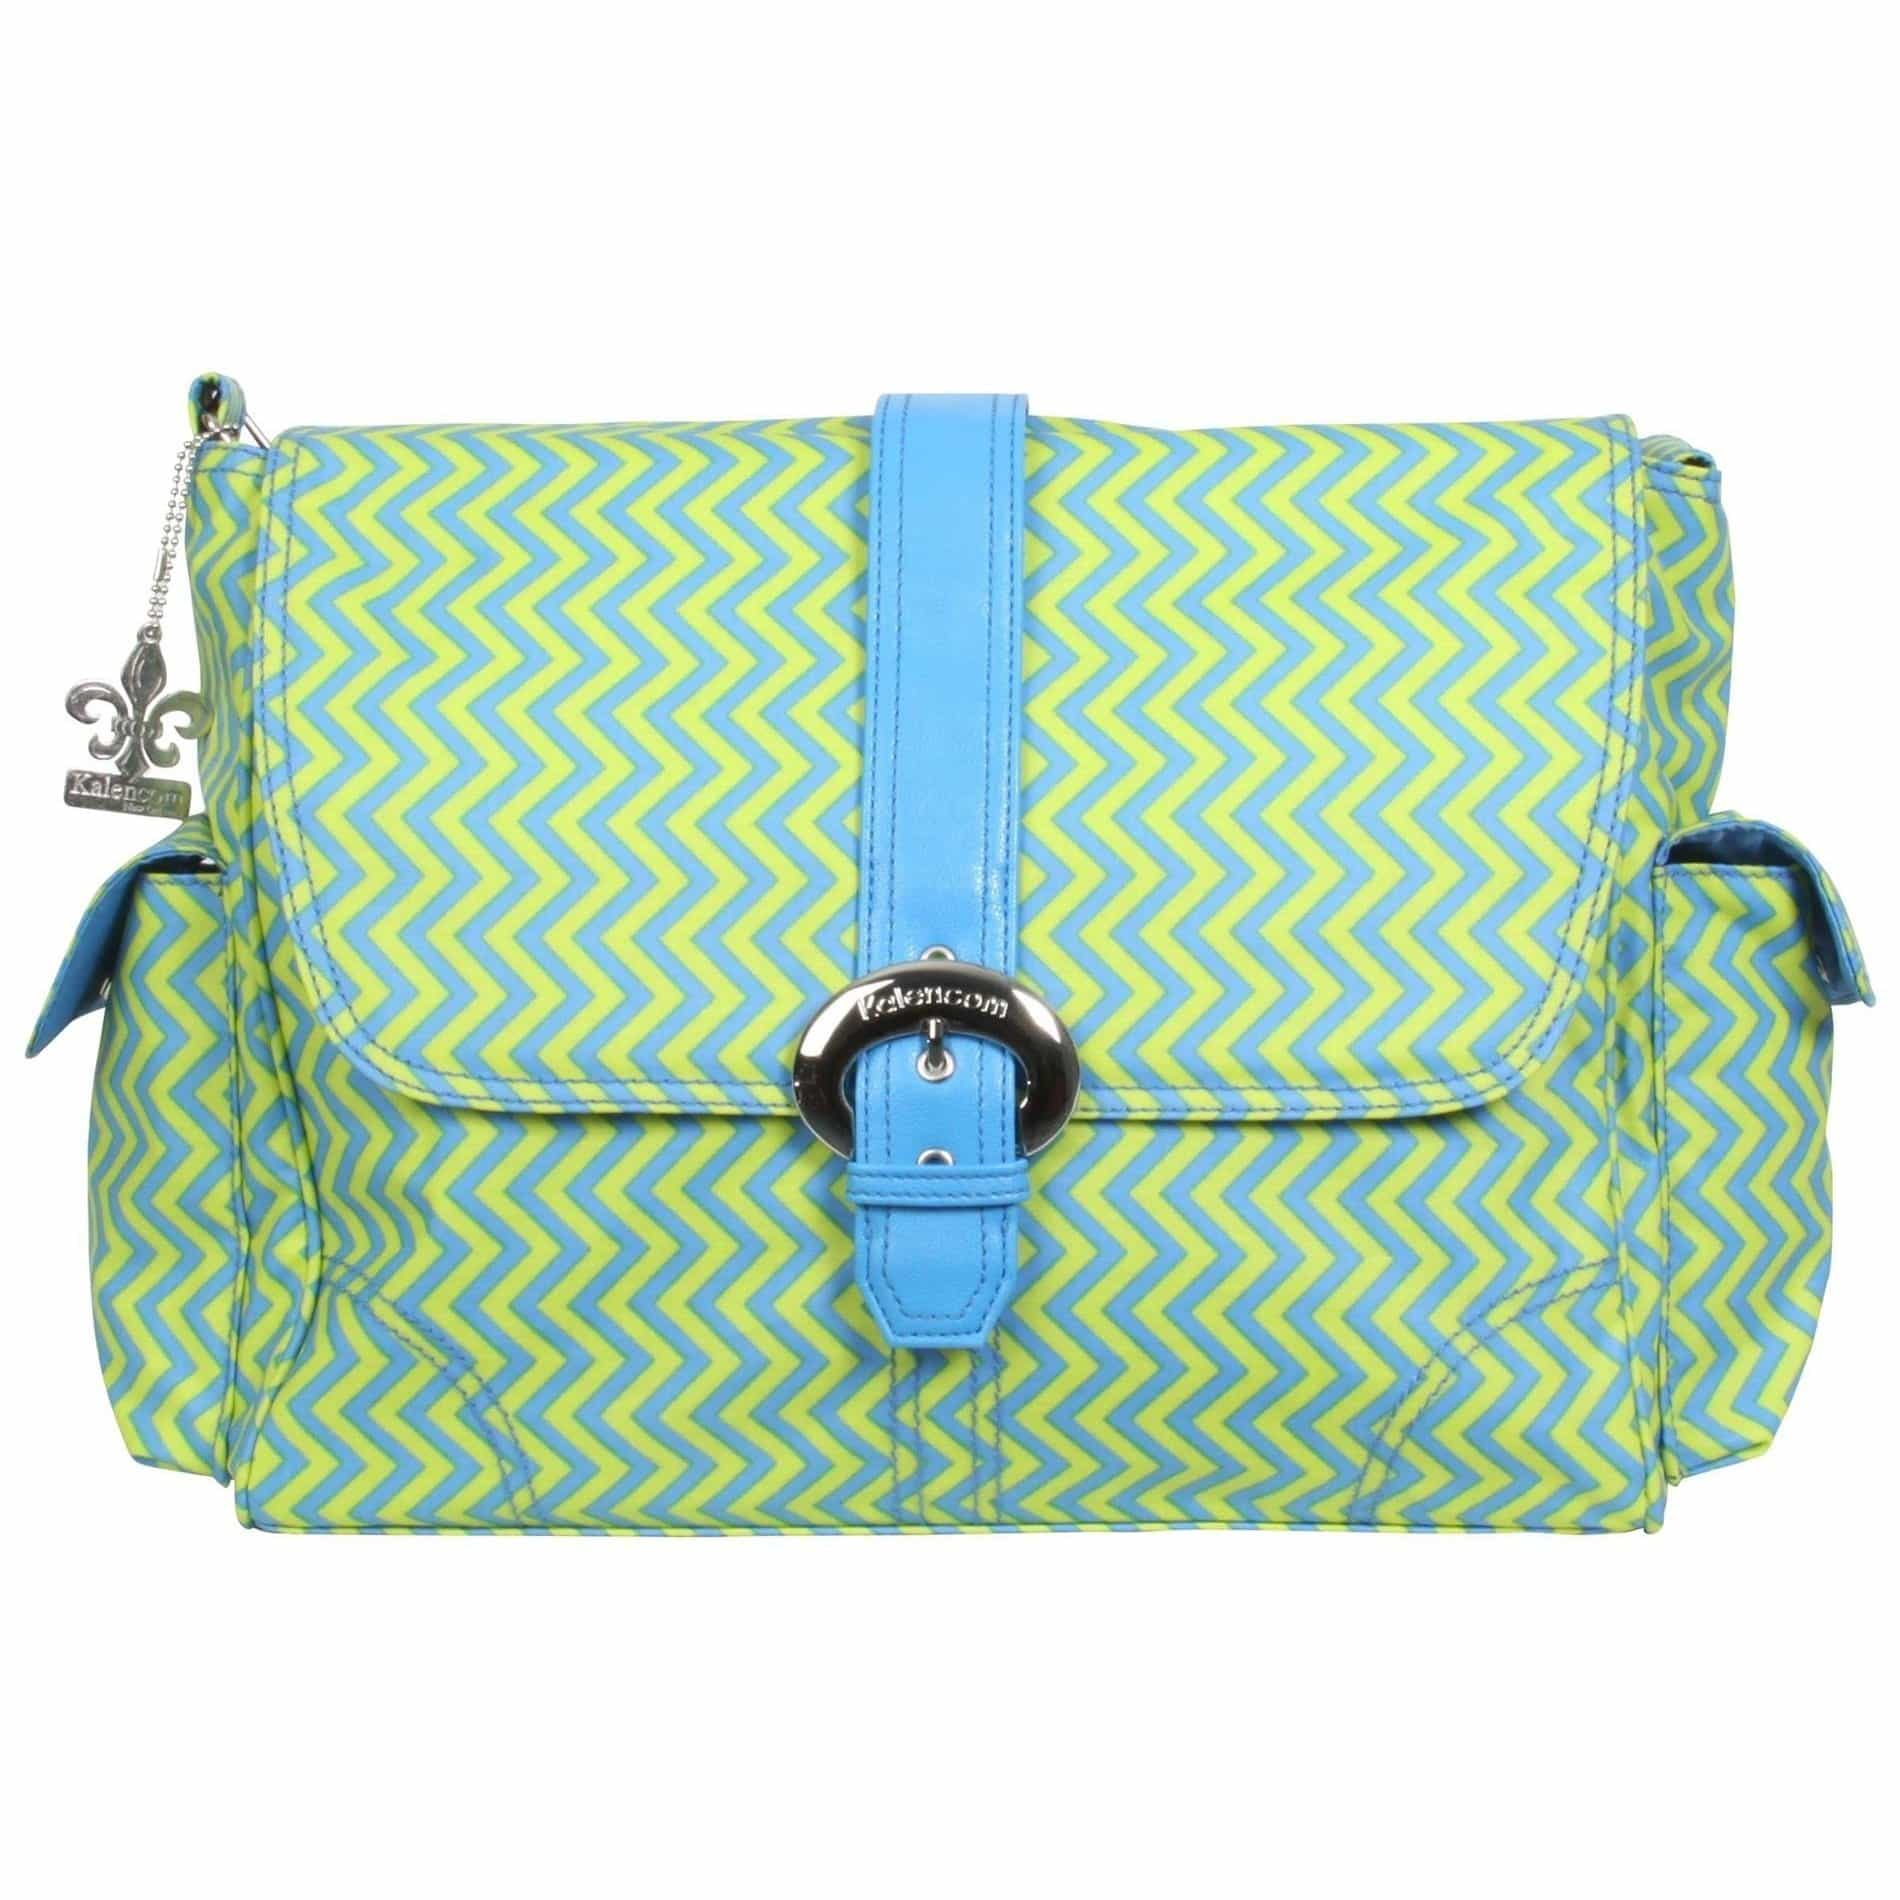 Wiggly Stripes - Beach Matte Coated Buckle Diaper Bag | Style 2960 - Kalencom-Diaper Bags-Jack and Jill Boutique